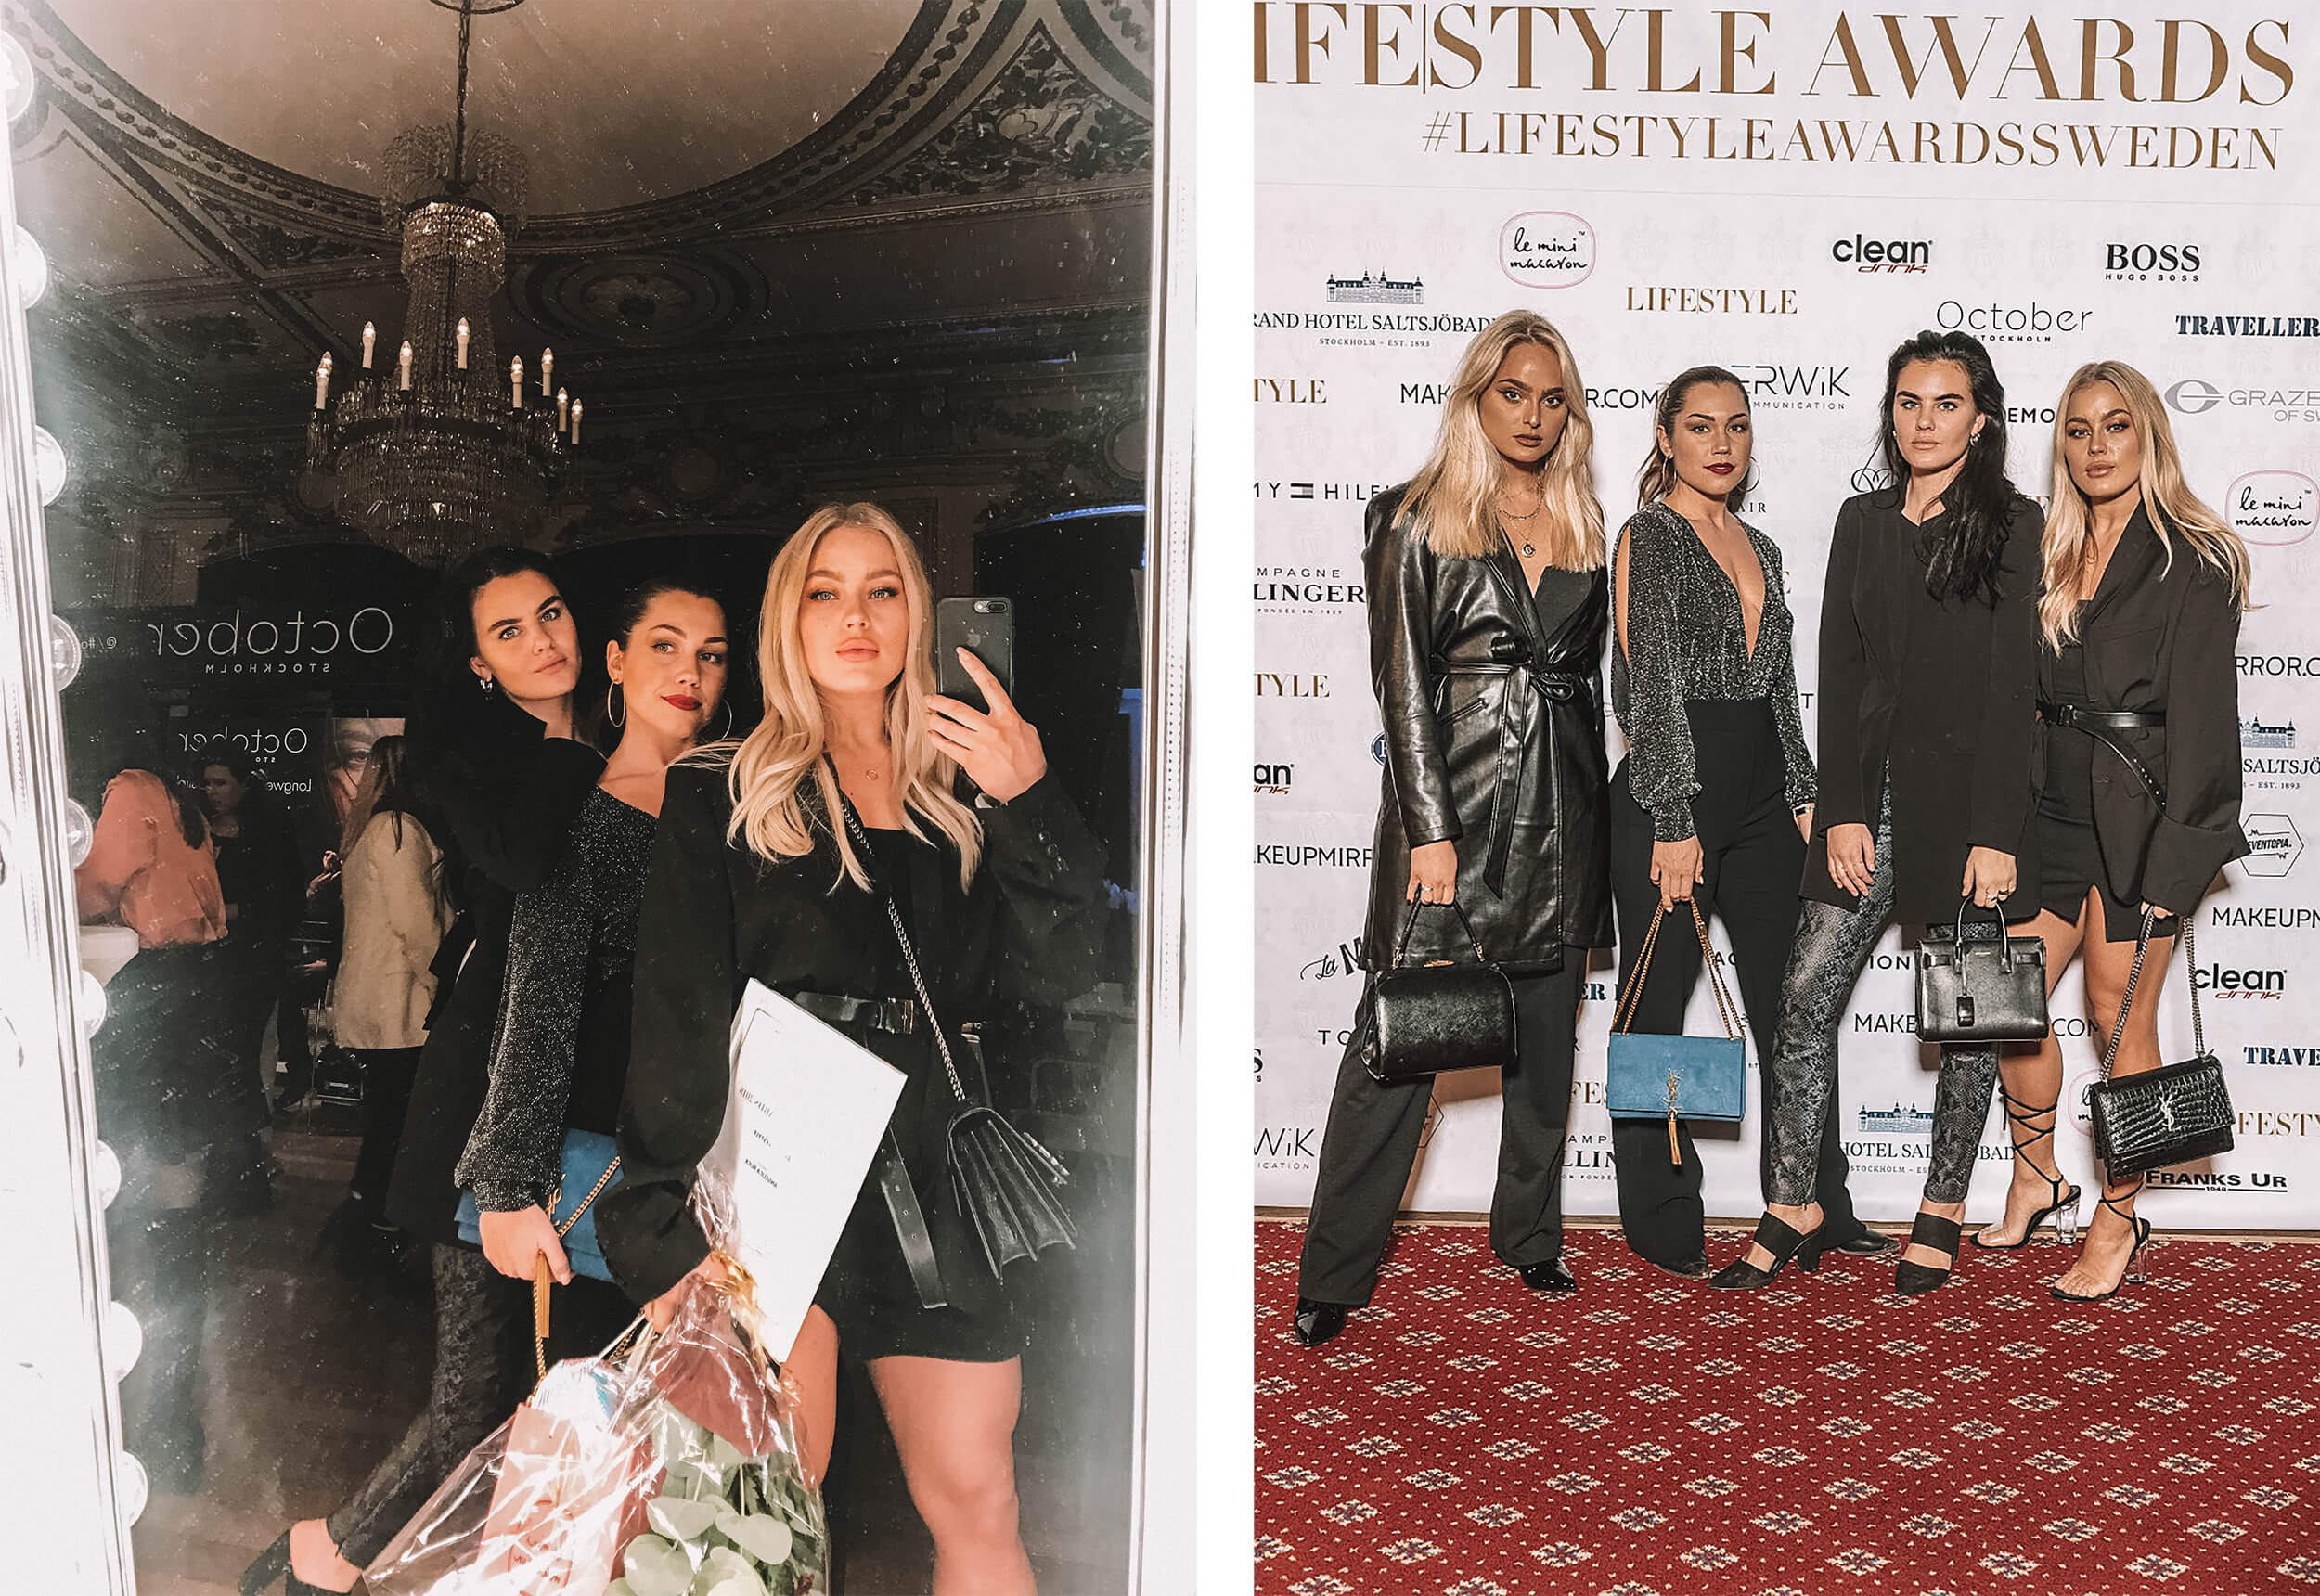 Lifestyle awards 2018